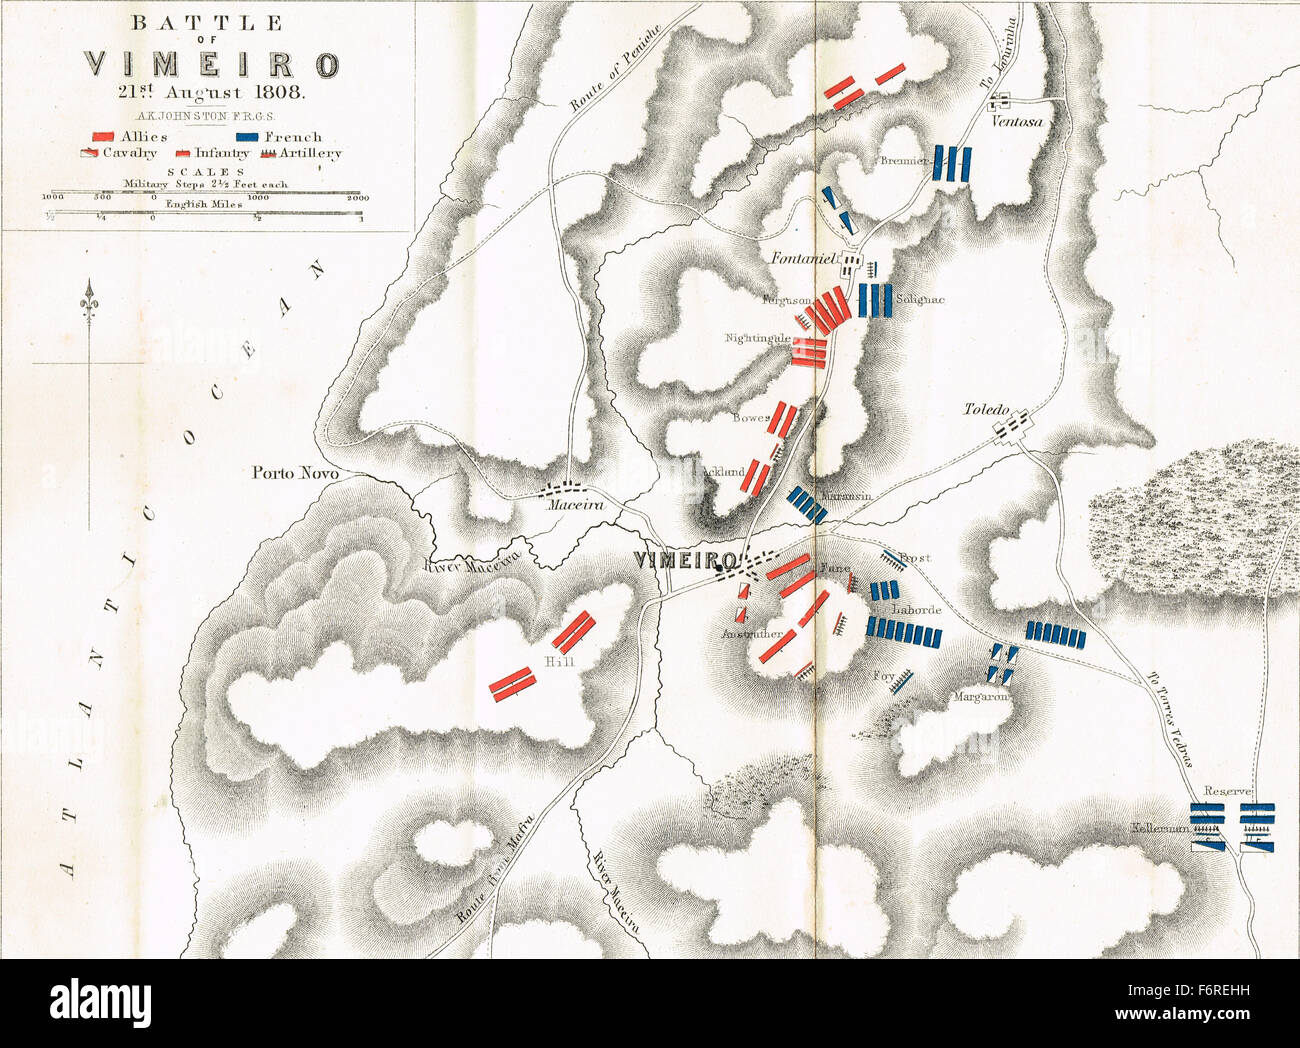 Map of the Battle of Vimeiro in 1808 - Stock Image